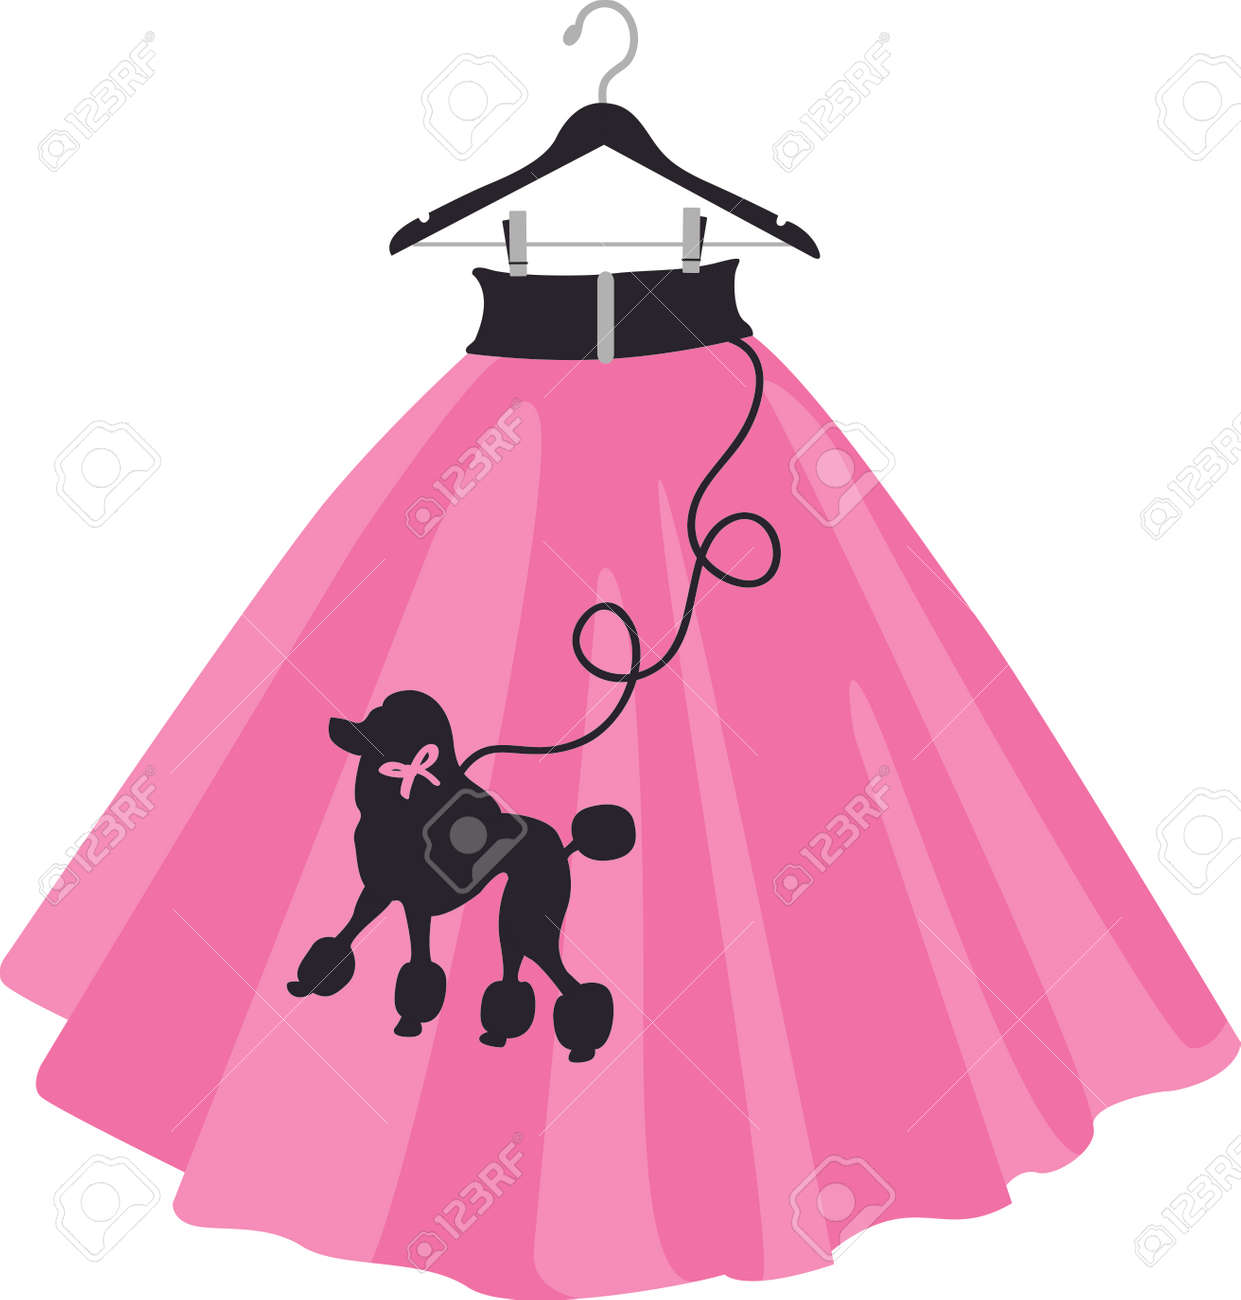 Girls Love Throwback 50s And Wearing Poodle Skirts Royalty Free